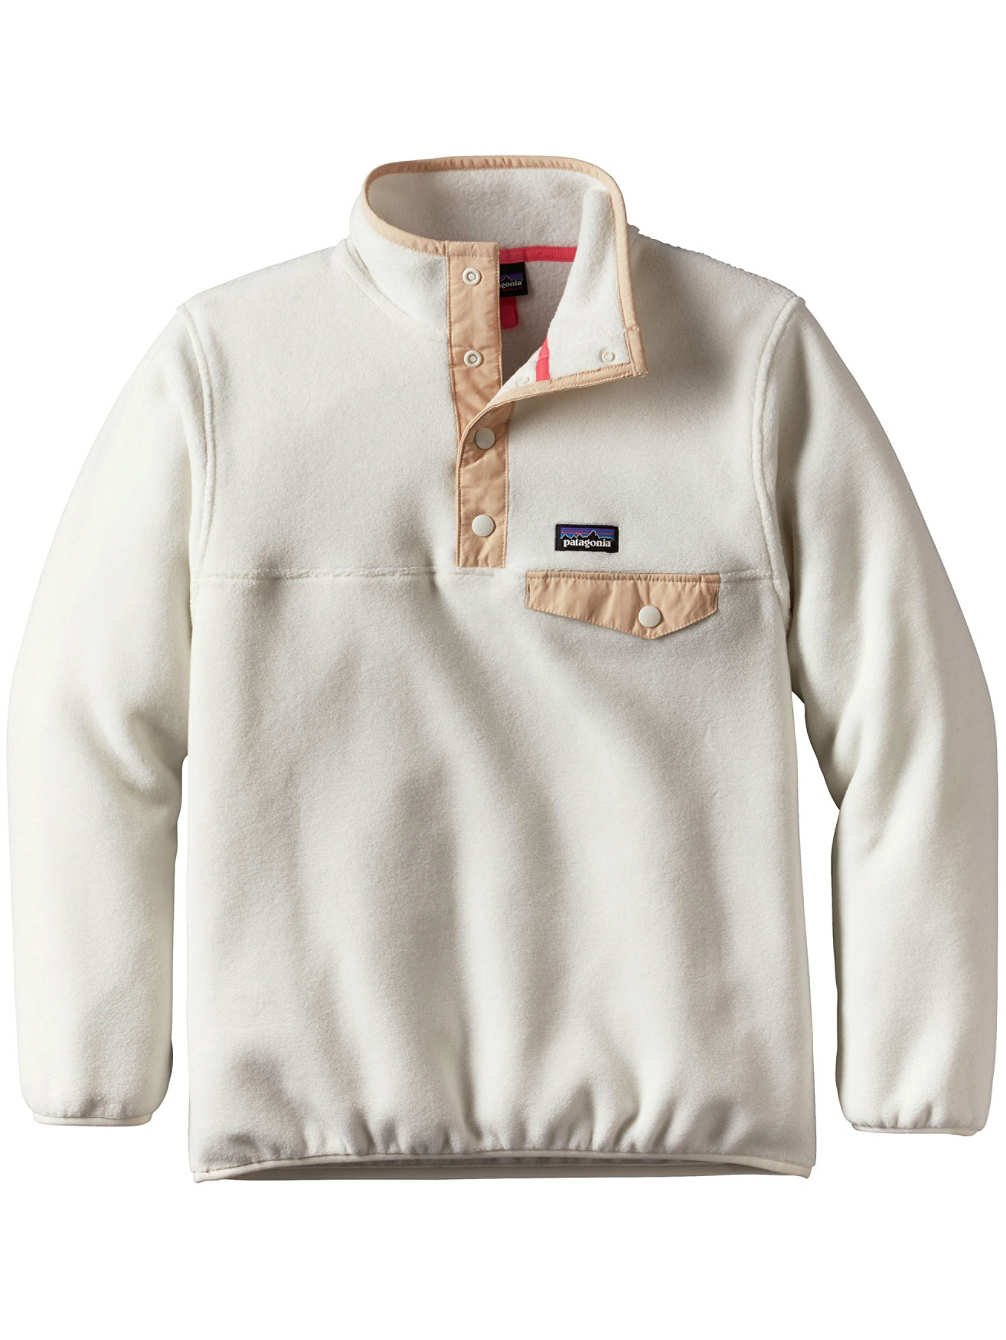 Patagonia Girls' Lightweight Synchilla Snap-T Pullover Birch White Large